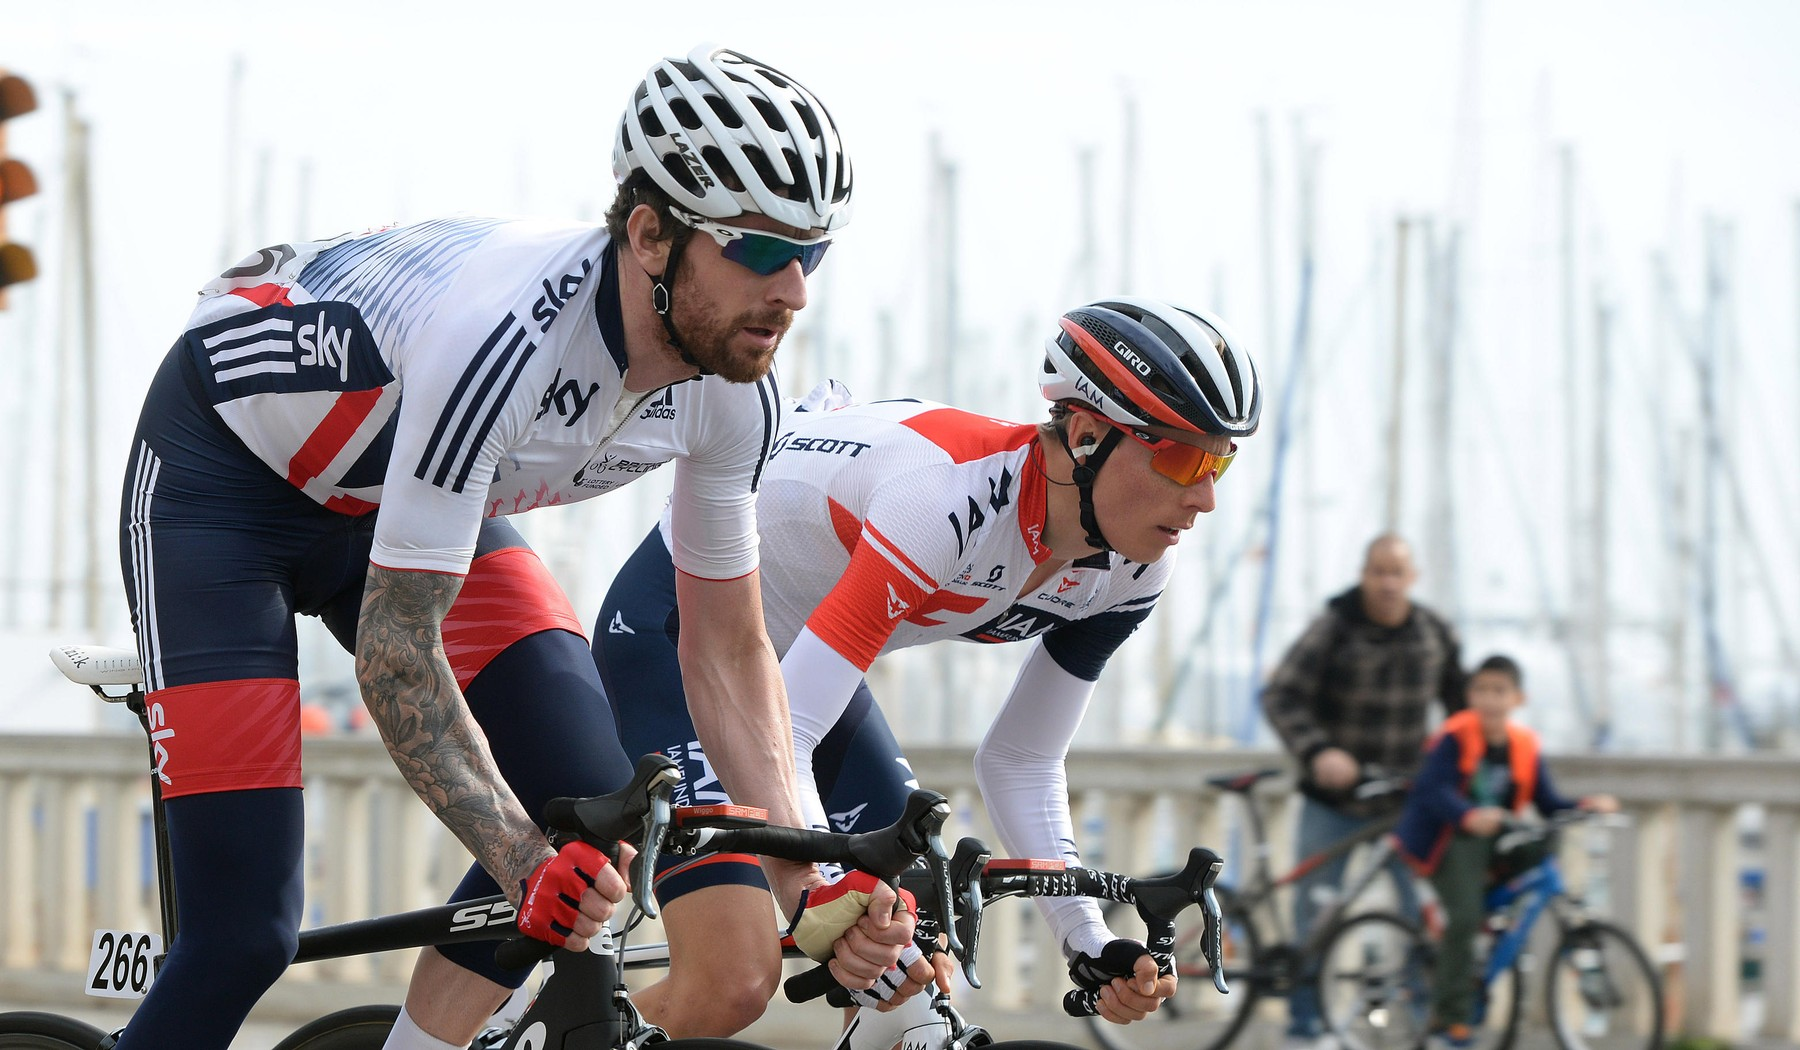 The British cyclist Bradley Wiggins during the Cyclist Challenge 2016 on the Majorca roads, with the National British team.